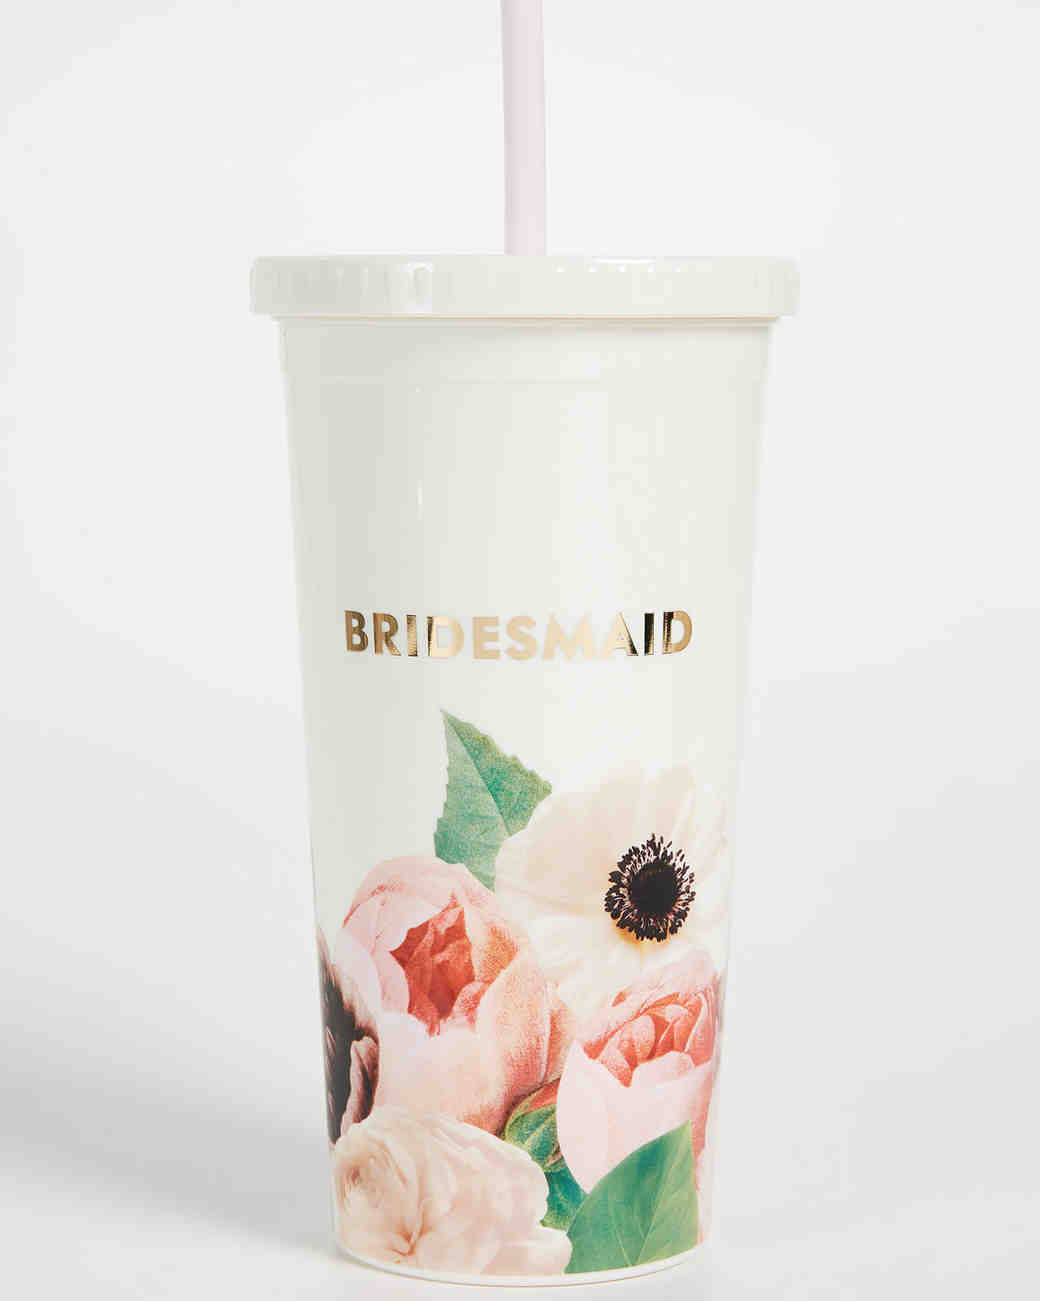 Bridesmaids Gifts Under 50, Bridesmaid Cup